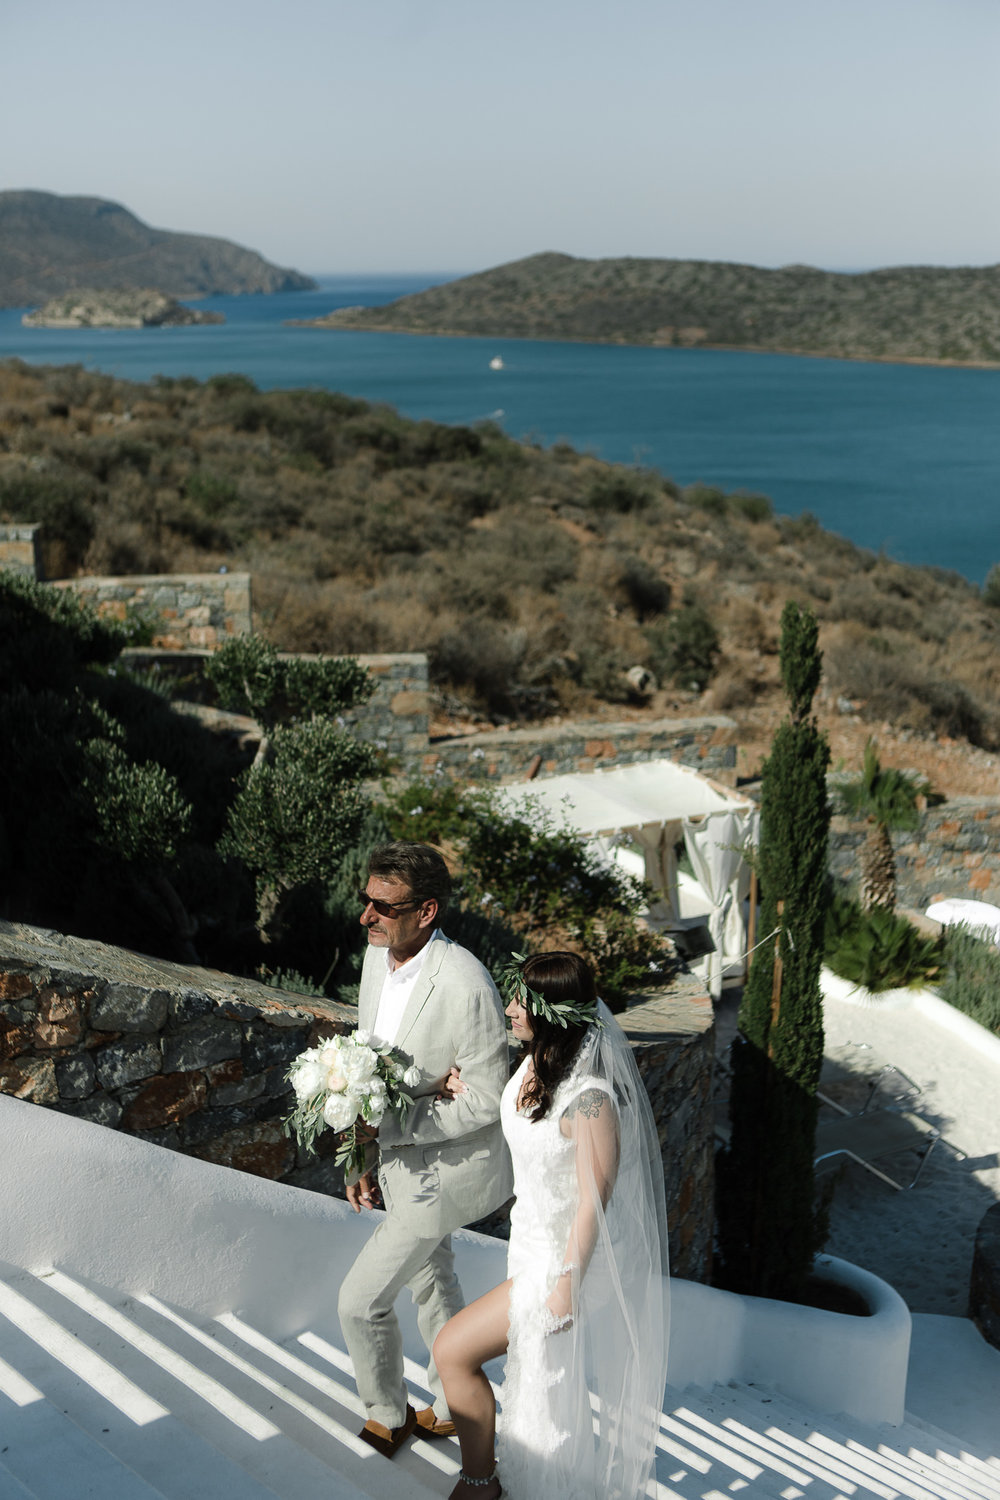 Fotomagoria - Elounda - Crete - Greece Wedding 124.jpg